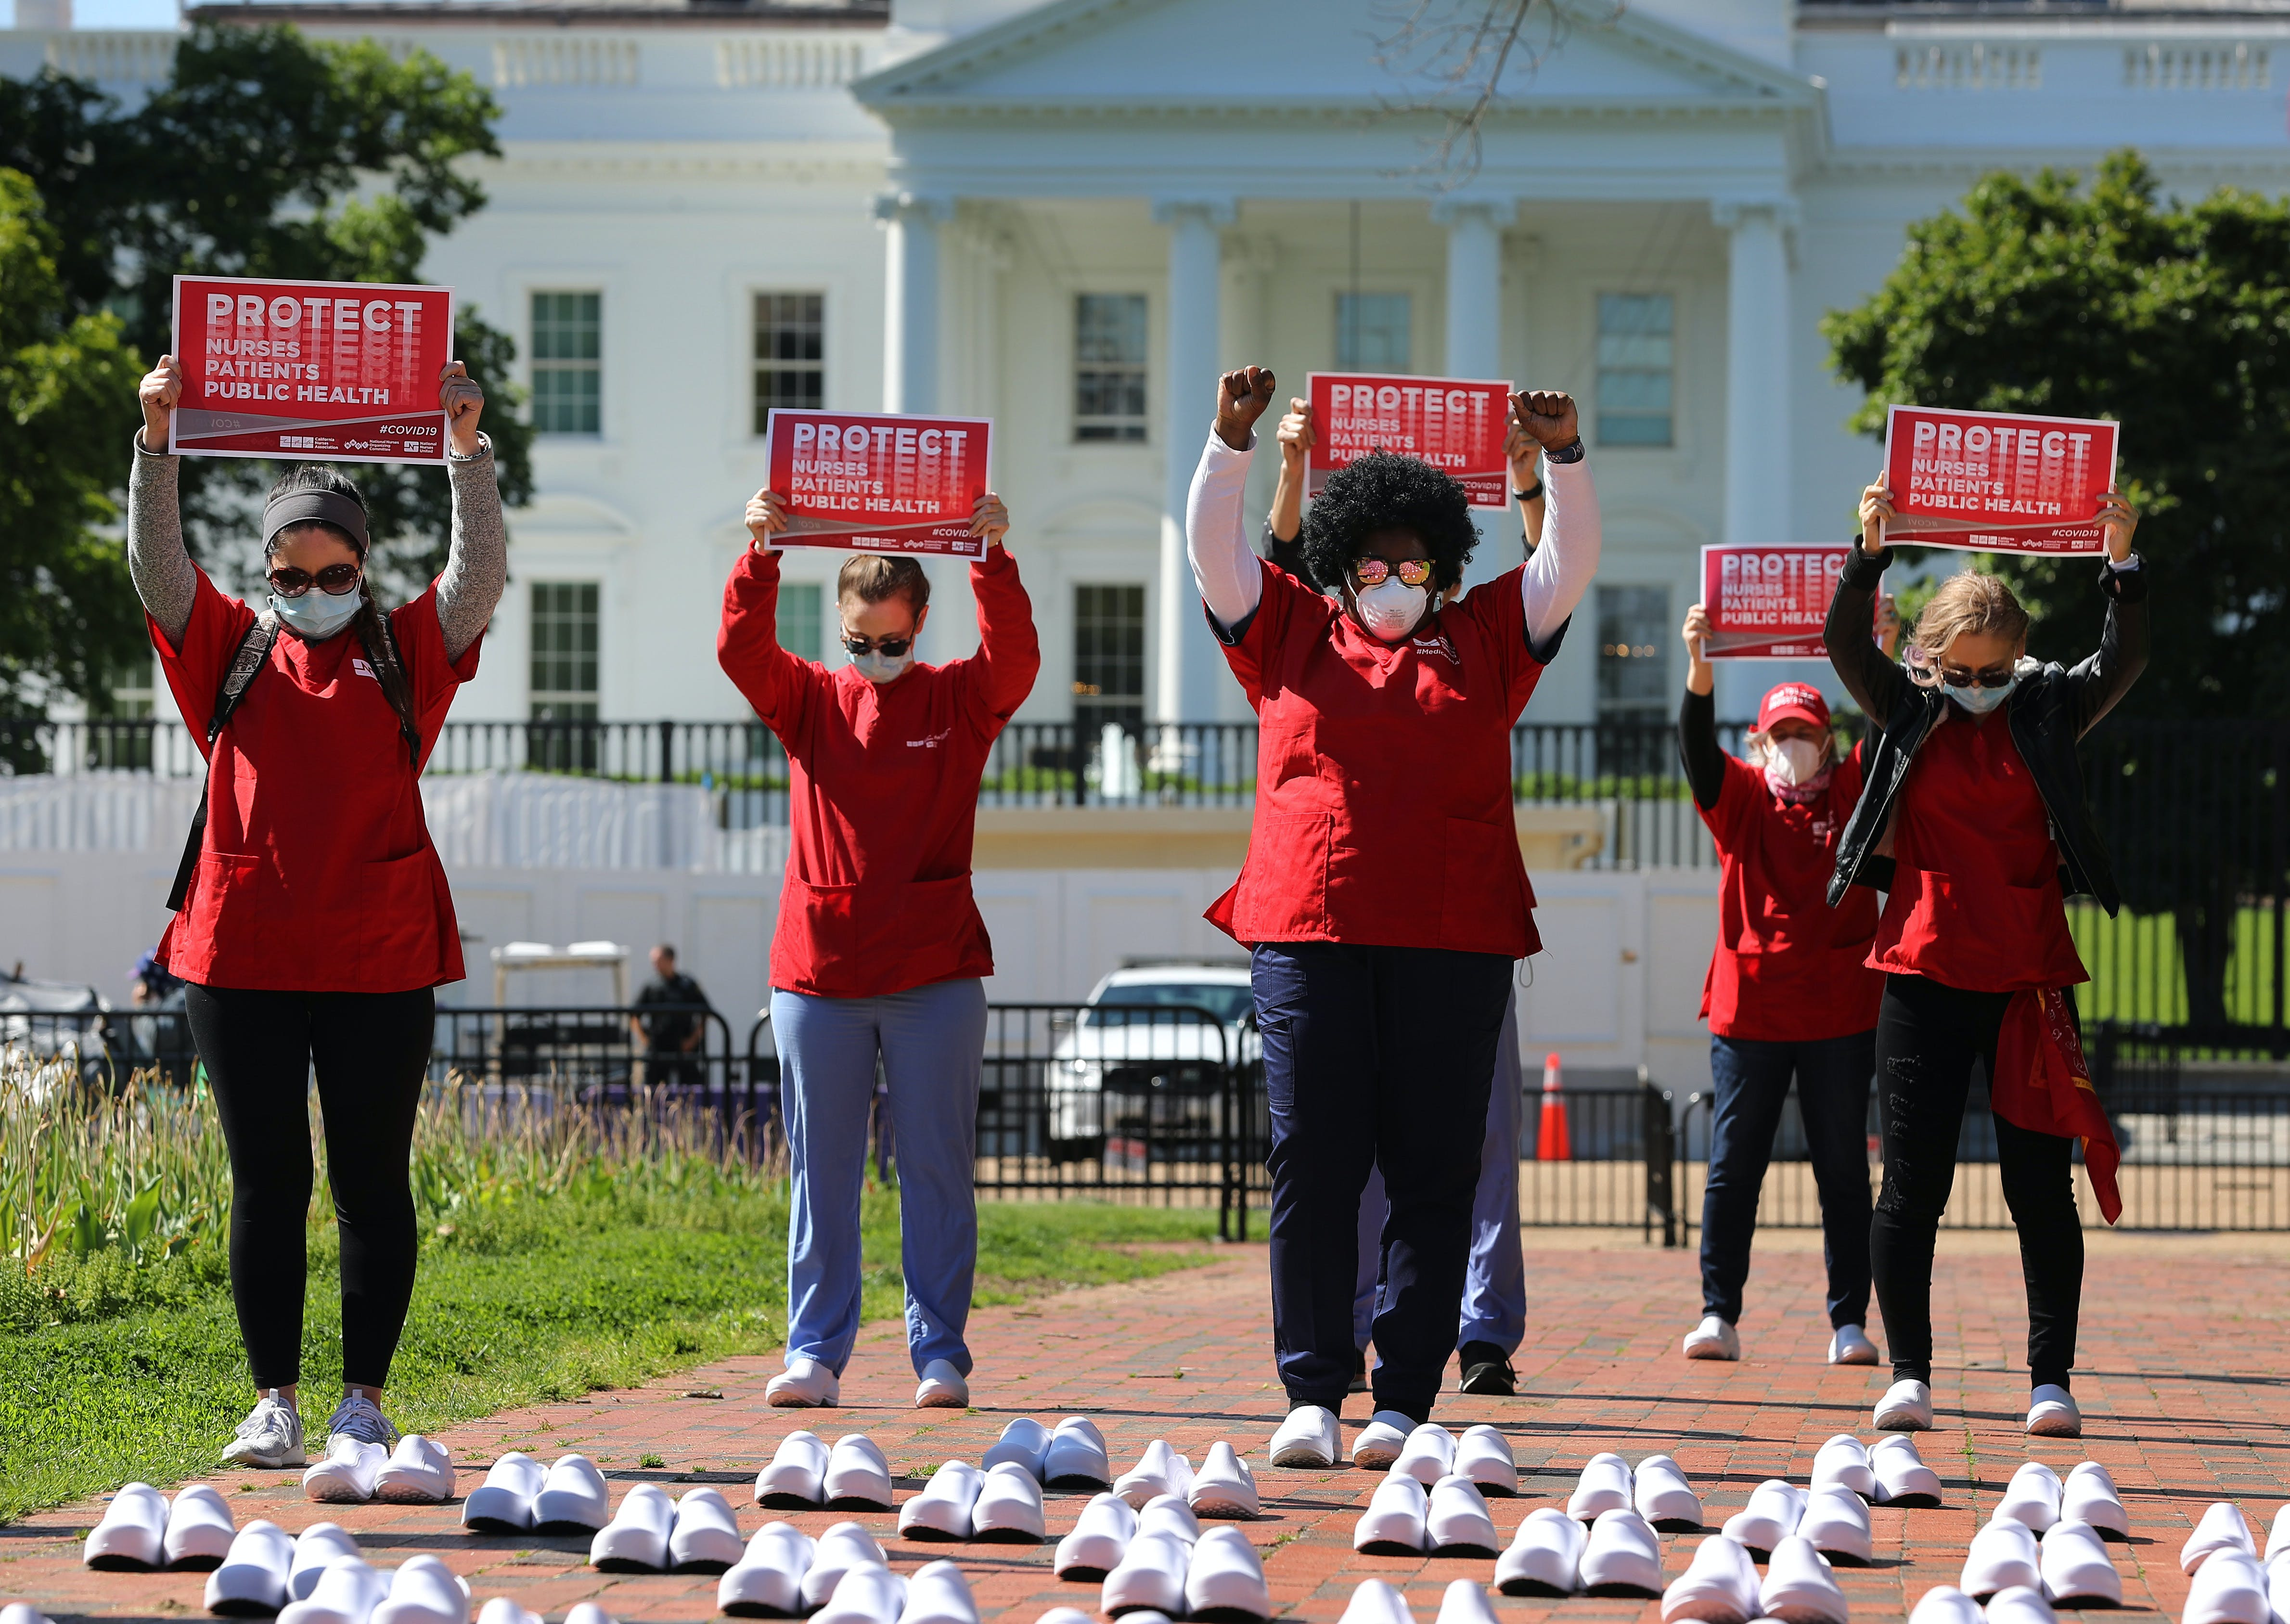 Members of the National Nurses United observe a moment of silence for the 88 nurses they say have died from COVID-19 while demonstrating in Lafayette Park across from the White House May 07, 2020 in Washington, DC.